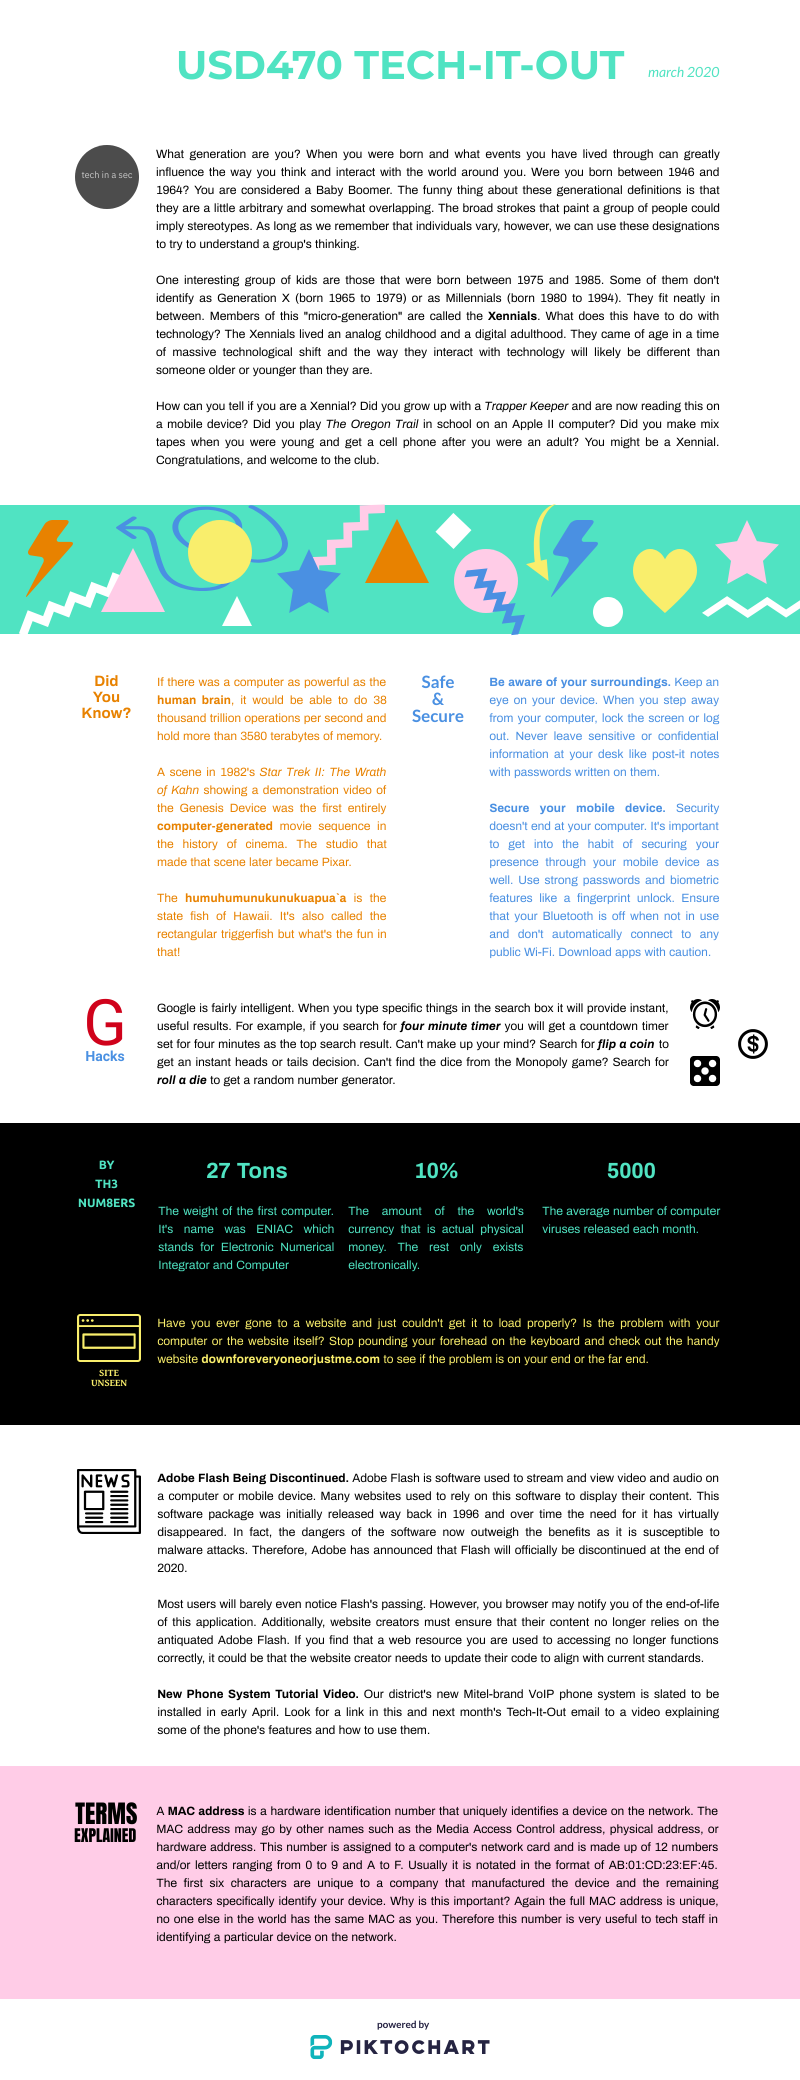 March 2020 Tech-It-Out Infographic